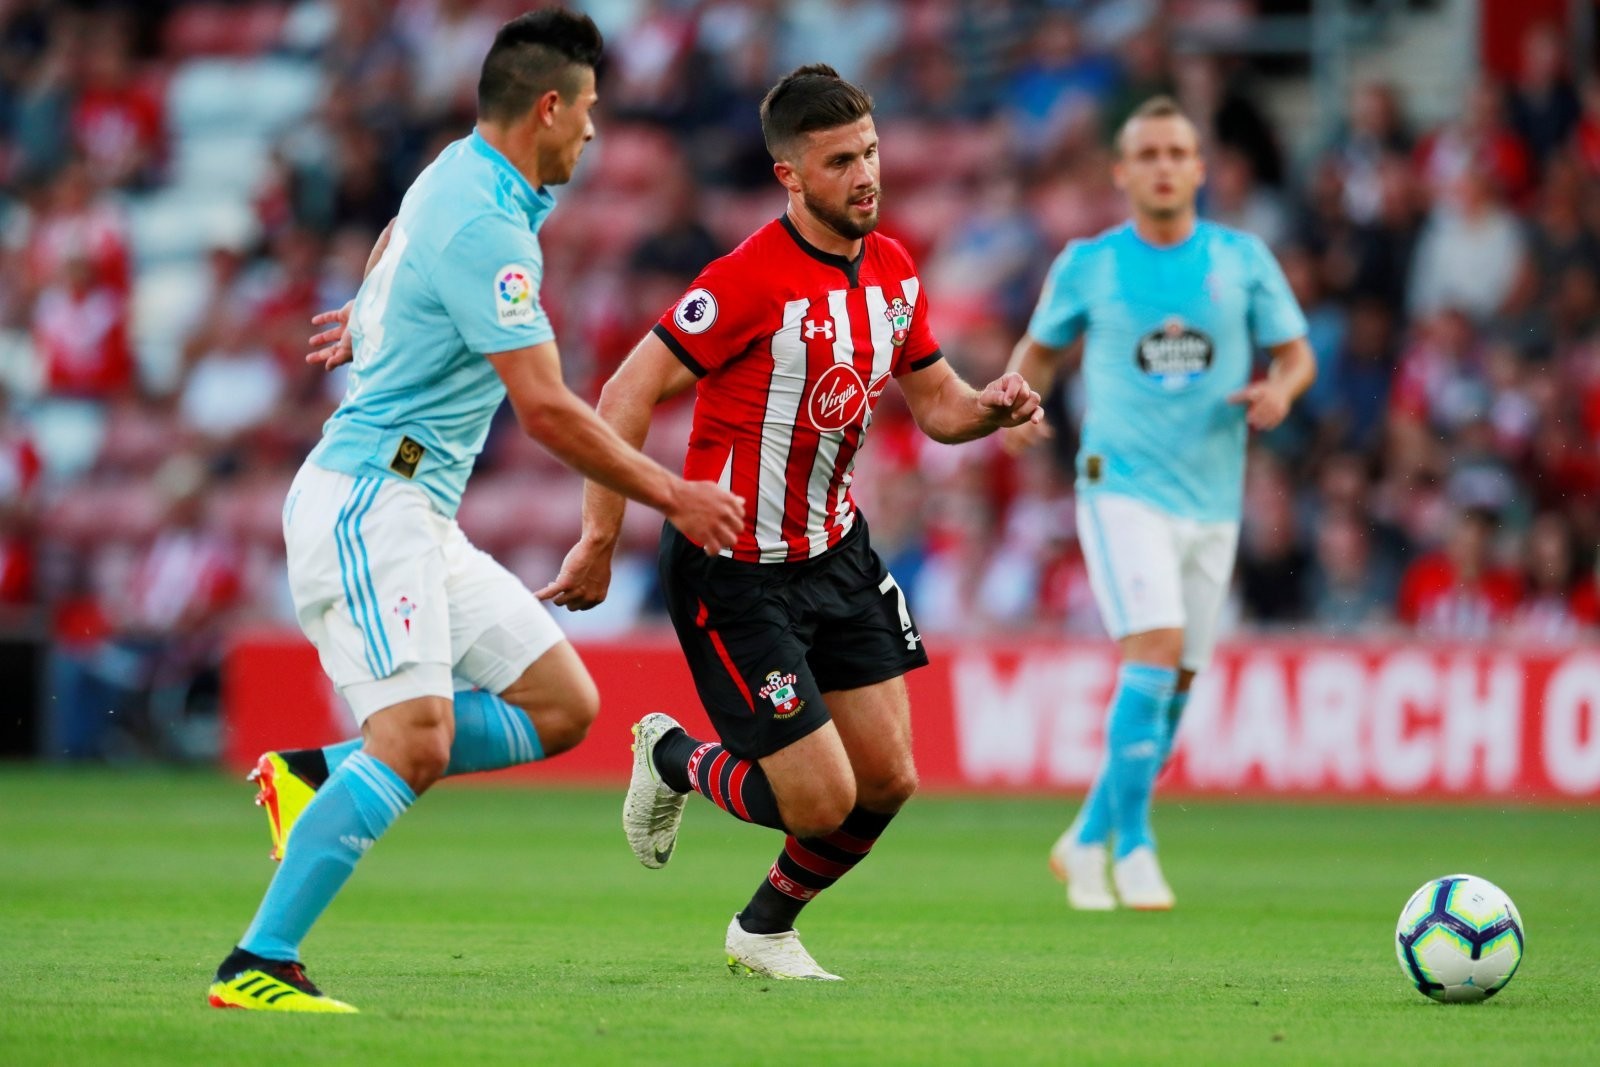 Aston Villa should sign Southampton's Shane Long on loan before August 31st